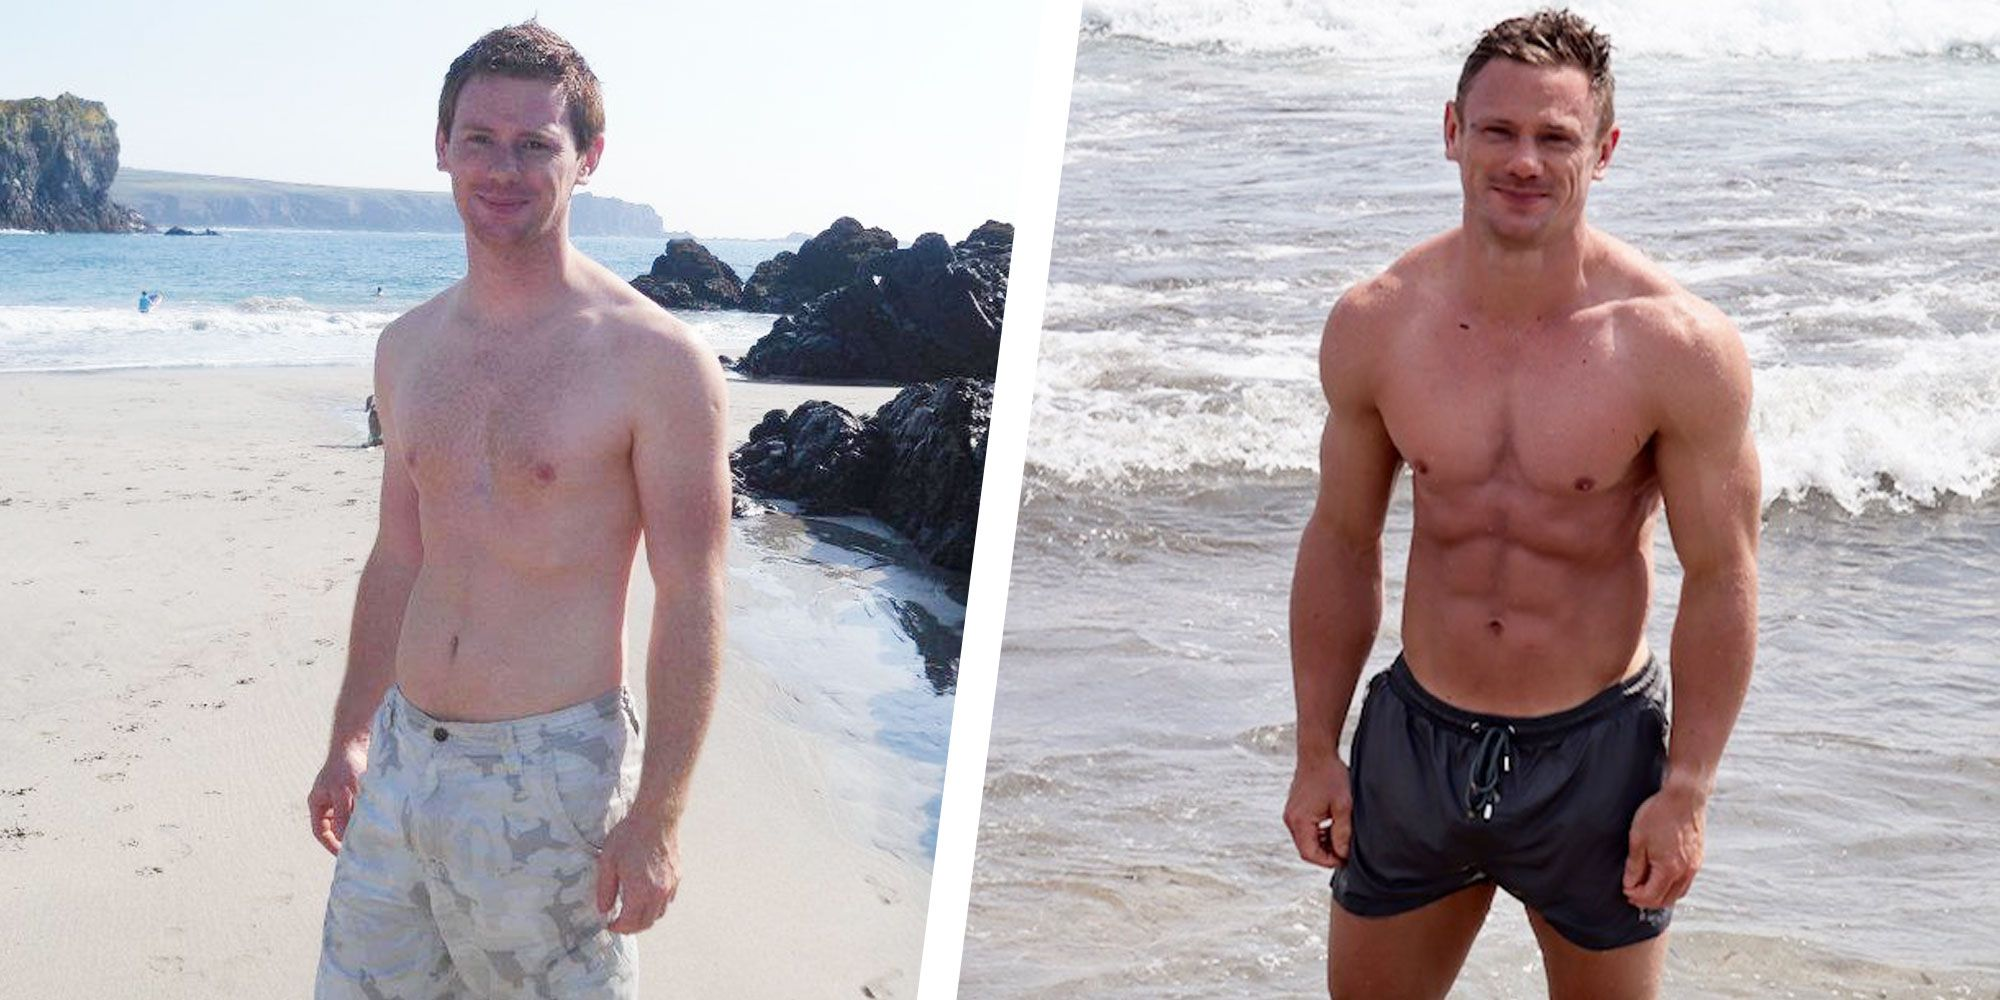 Two Simple Diet Changes Helped This Guy Reveal His Six-Pack Abs